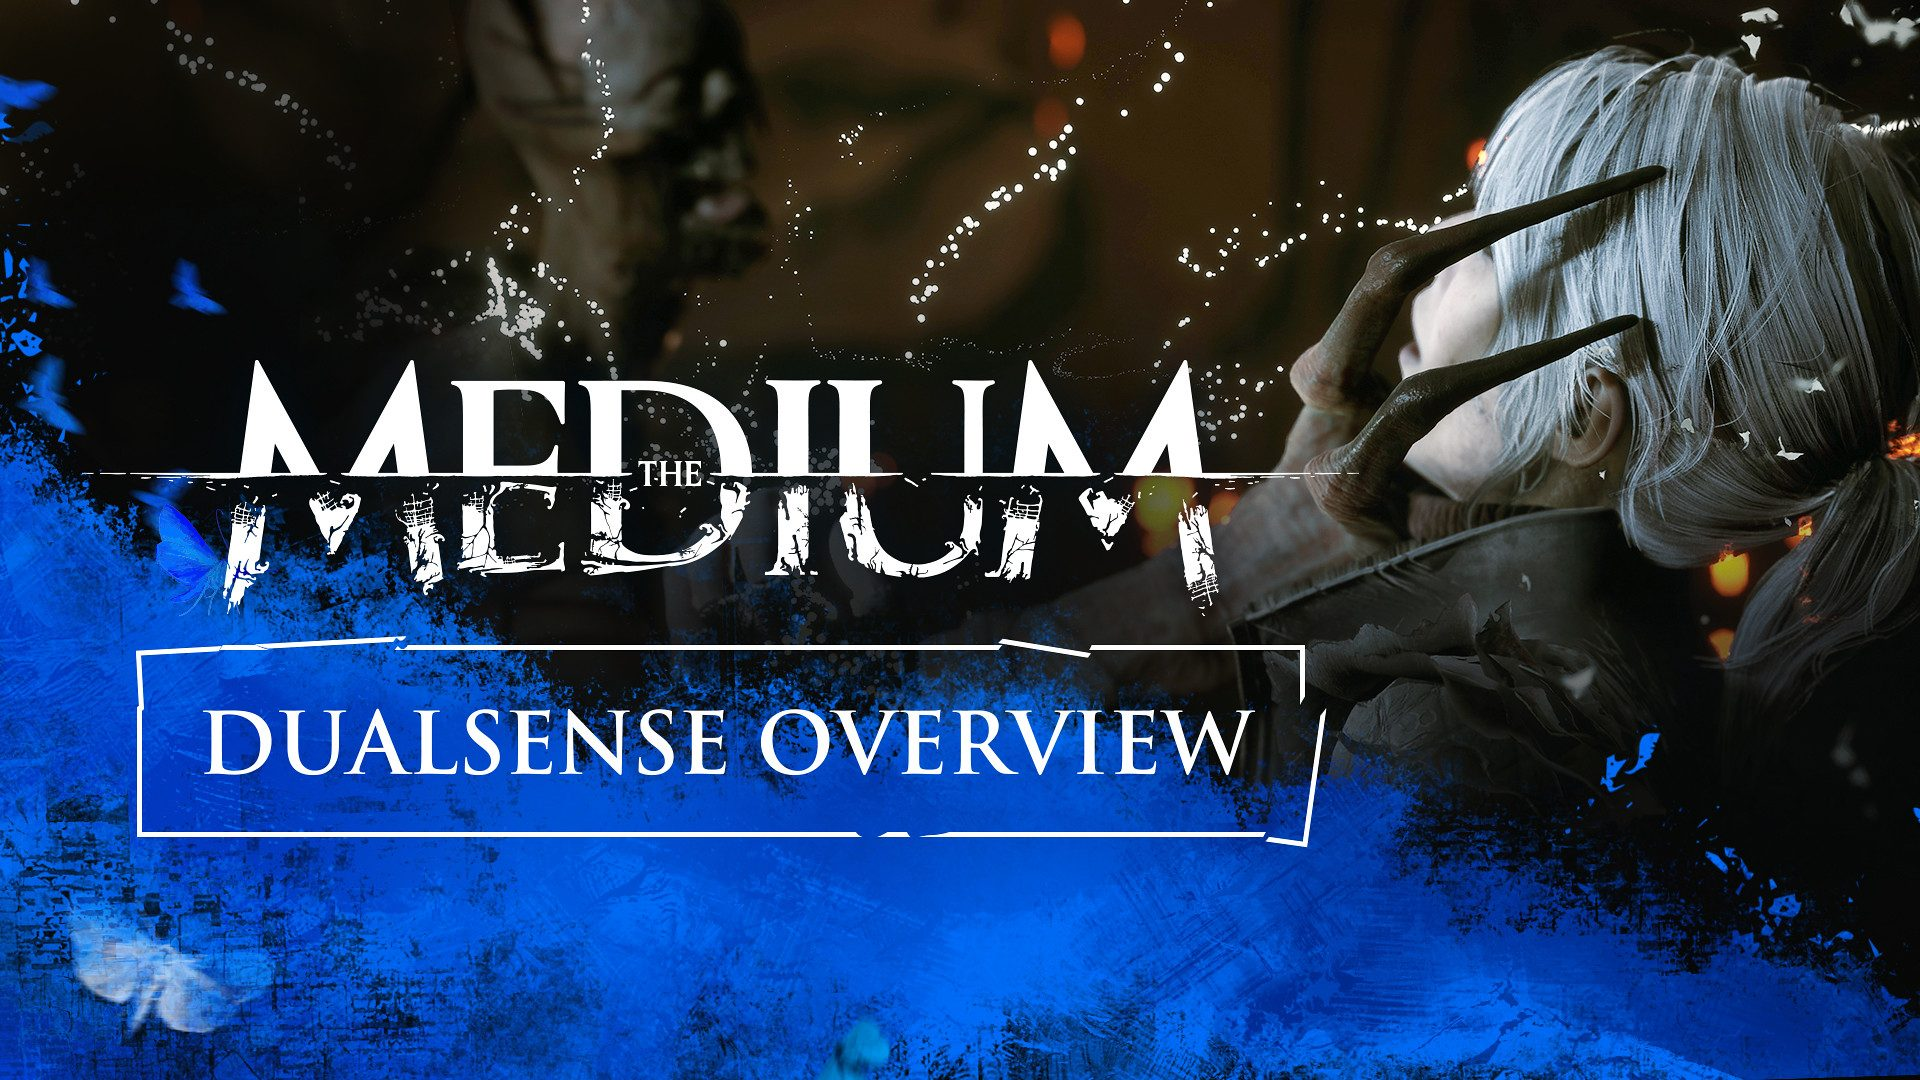 how-horror-video-game-the-medium-immerses-players-with-the-dualsense-wi-fi-controller